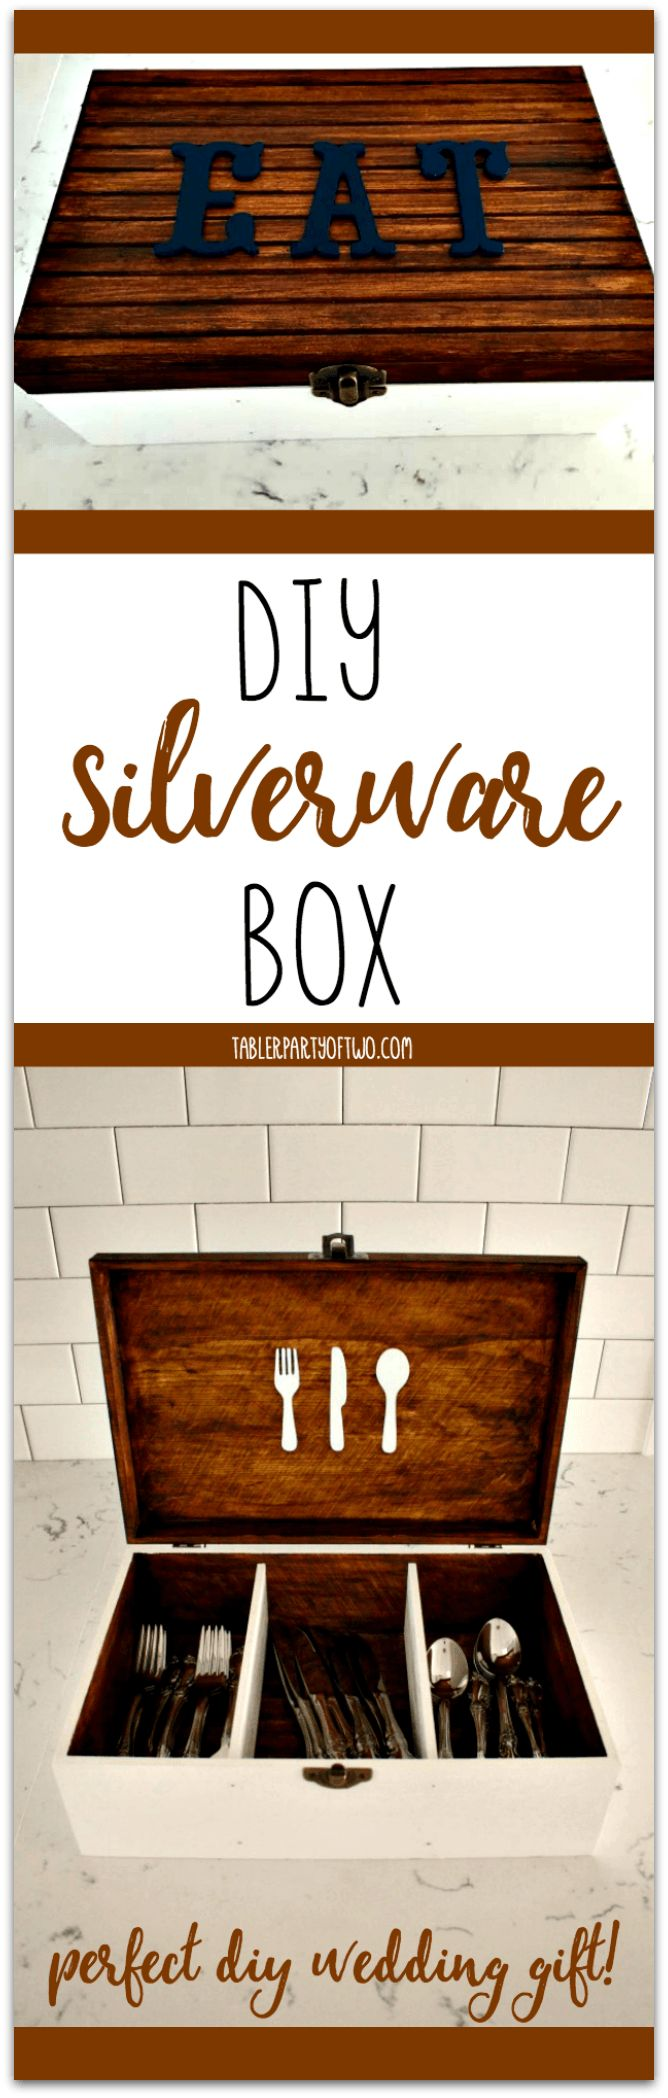 This DIY Silverware Box is so dang cute. Plus, it's such a perfect gift you can make — instead of buy — for the next couple you know who is getting married! It's so much cuter than any box you could find at a fancy store. Tabler Party Of Two | TablerPartyOfTwo.com